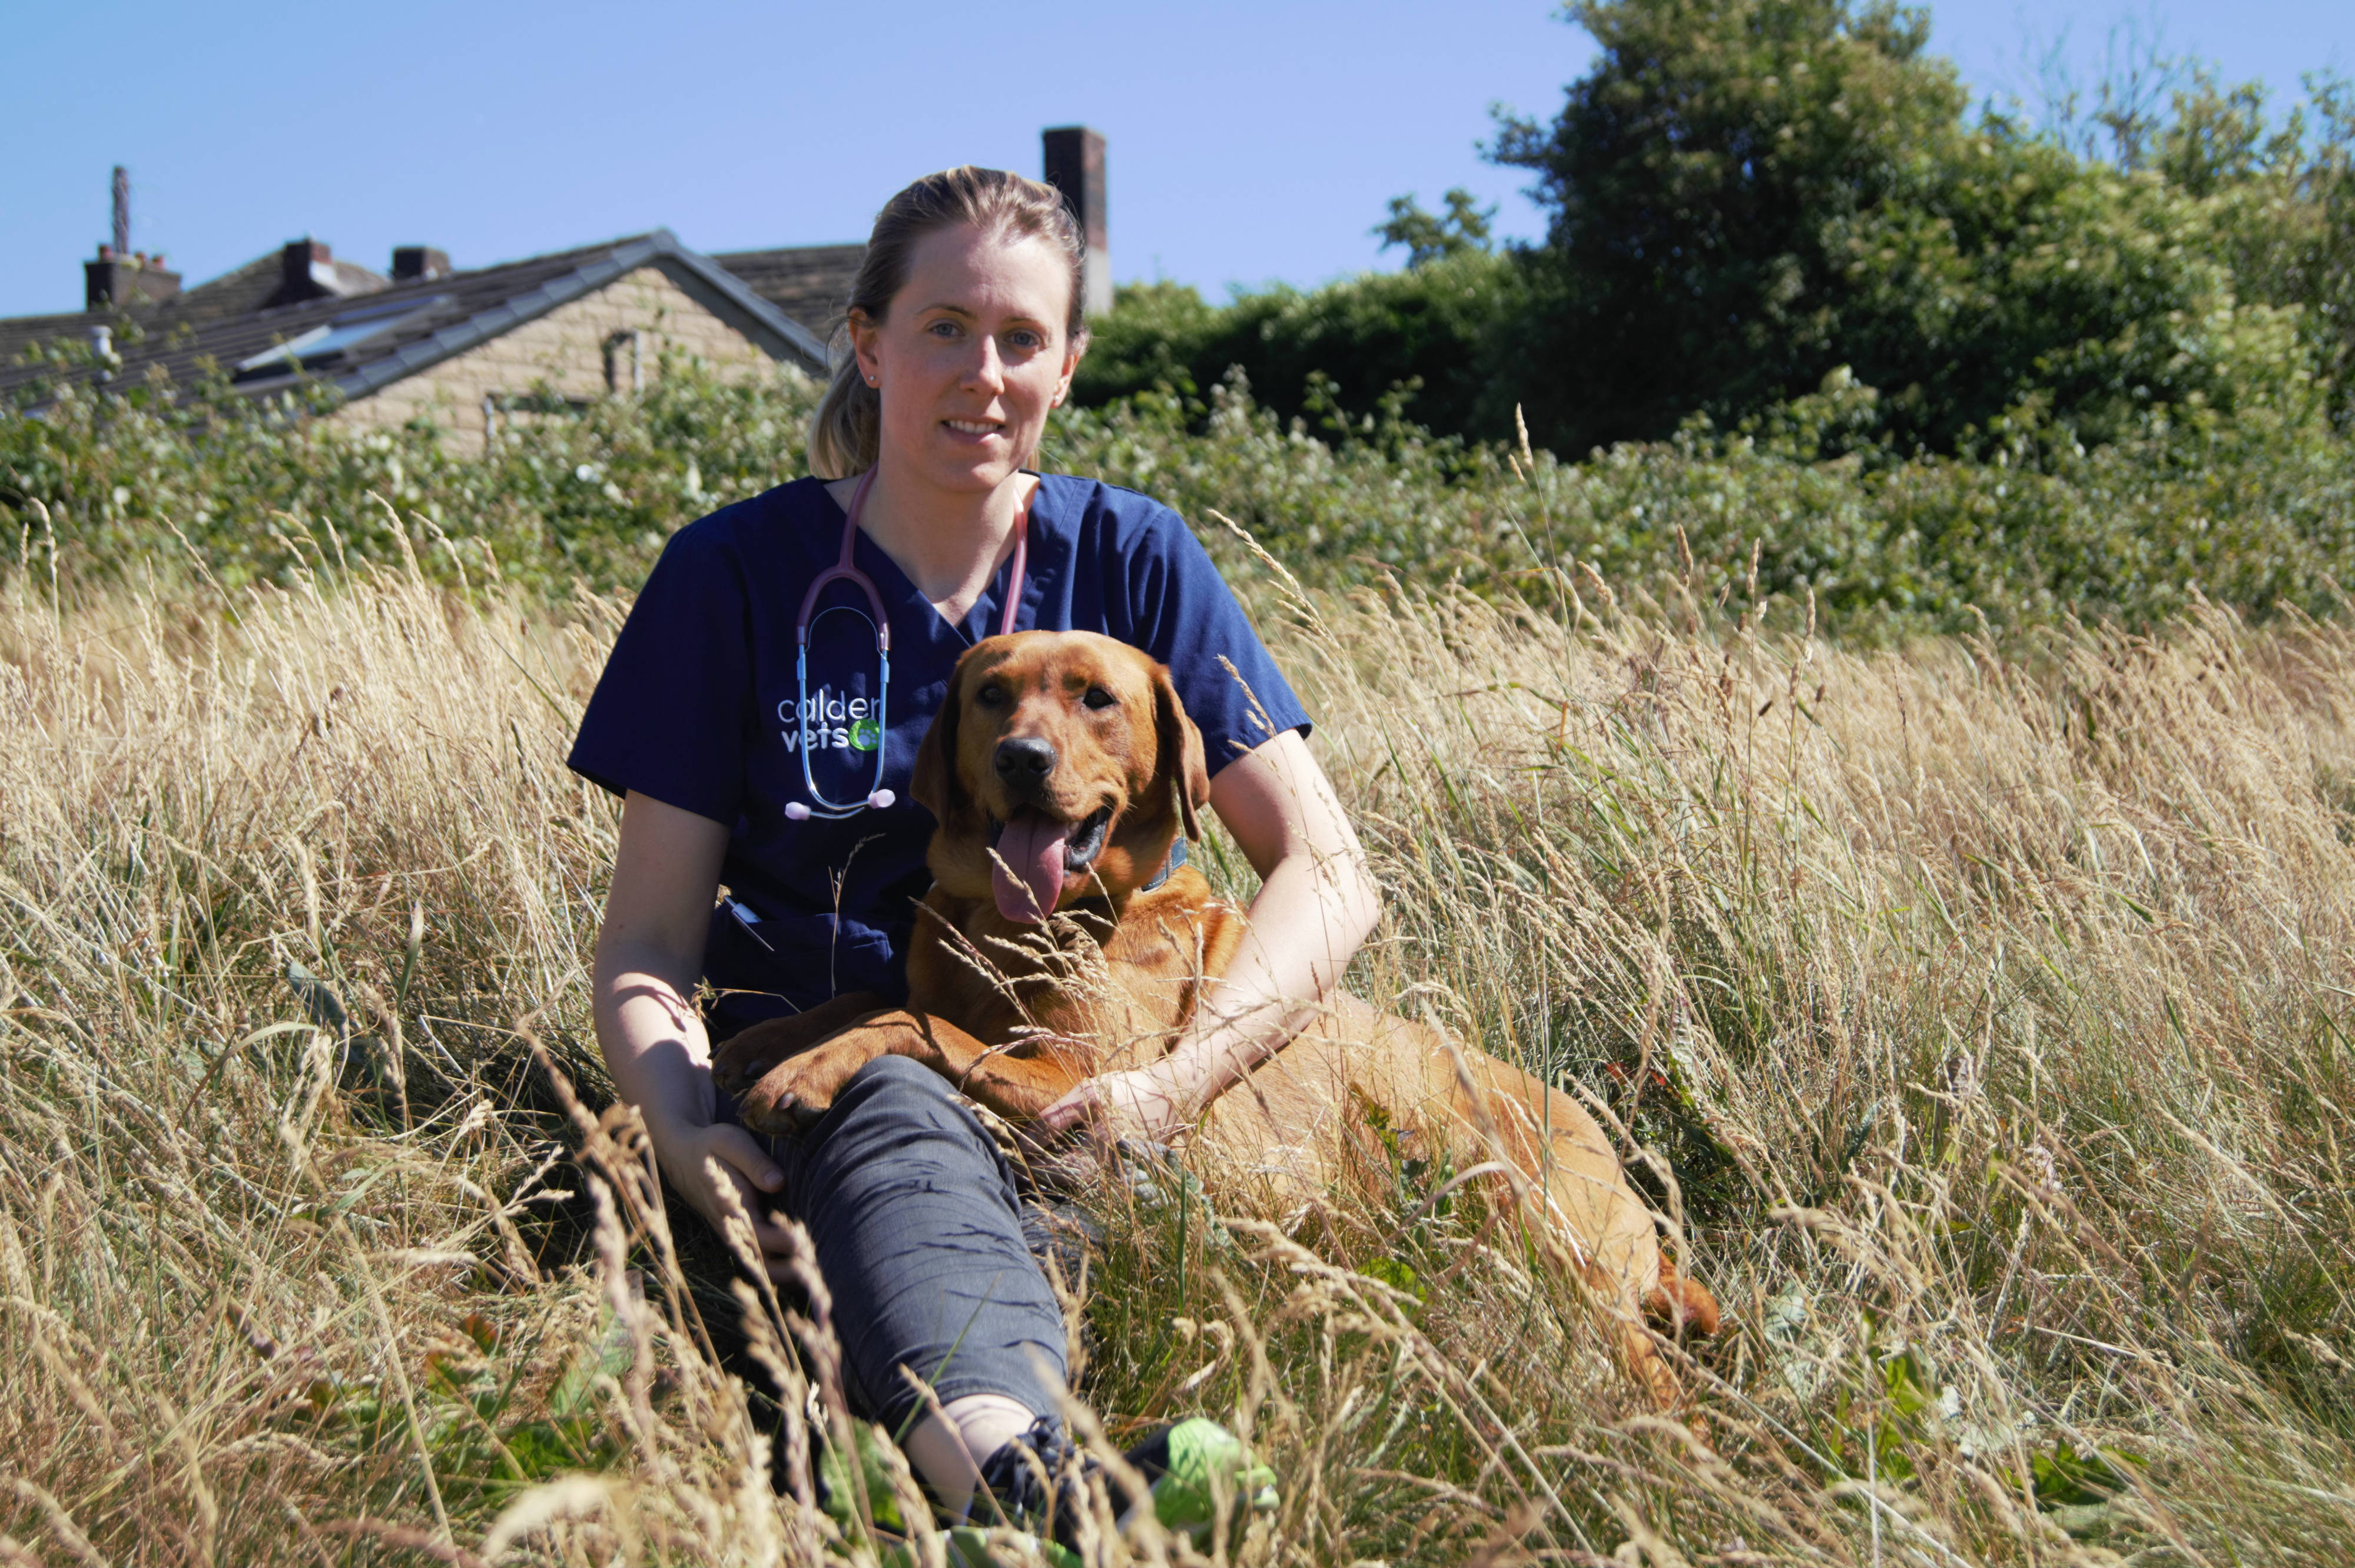 Gemma Kilby is advising pet owners about the heatwave